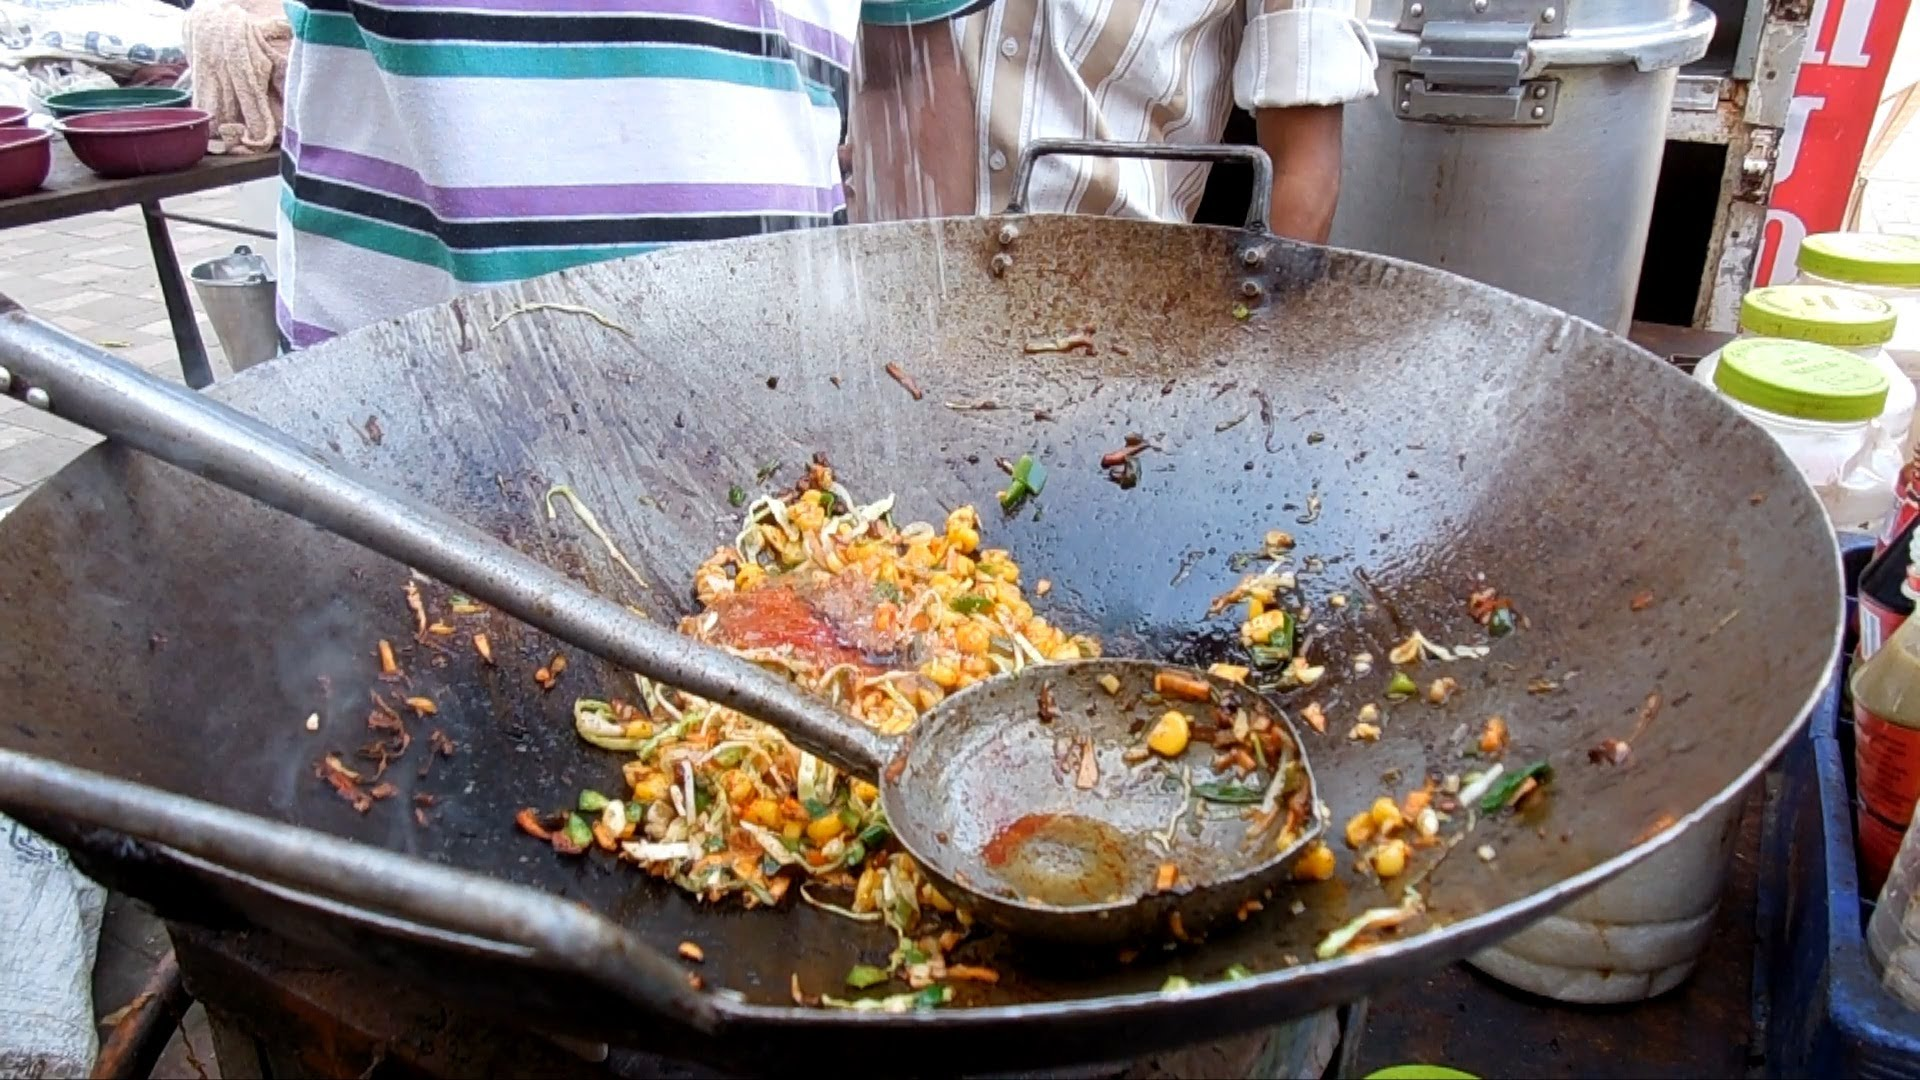 Indian Street Food Scene The Skillful Master Chefs In The